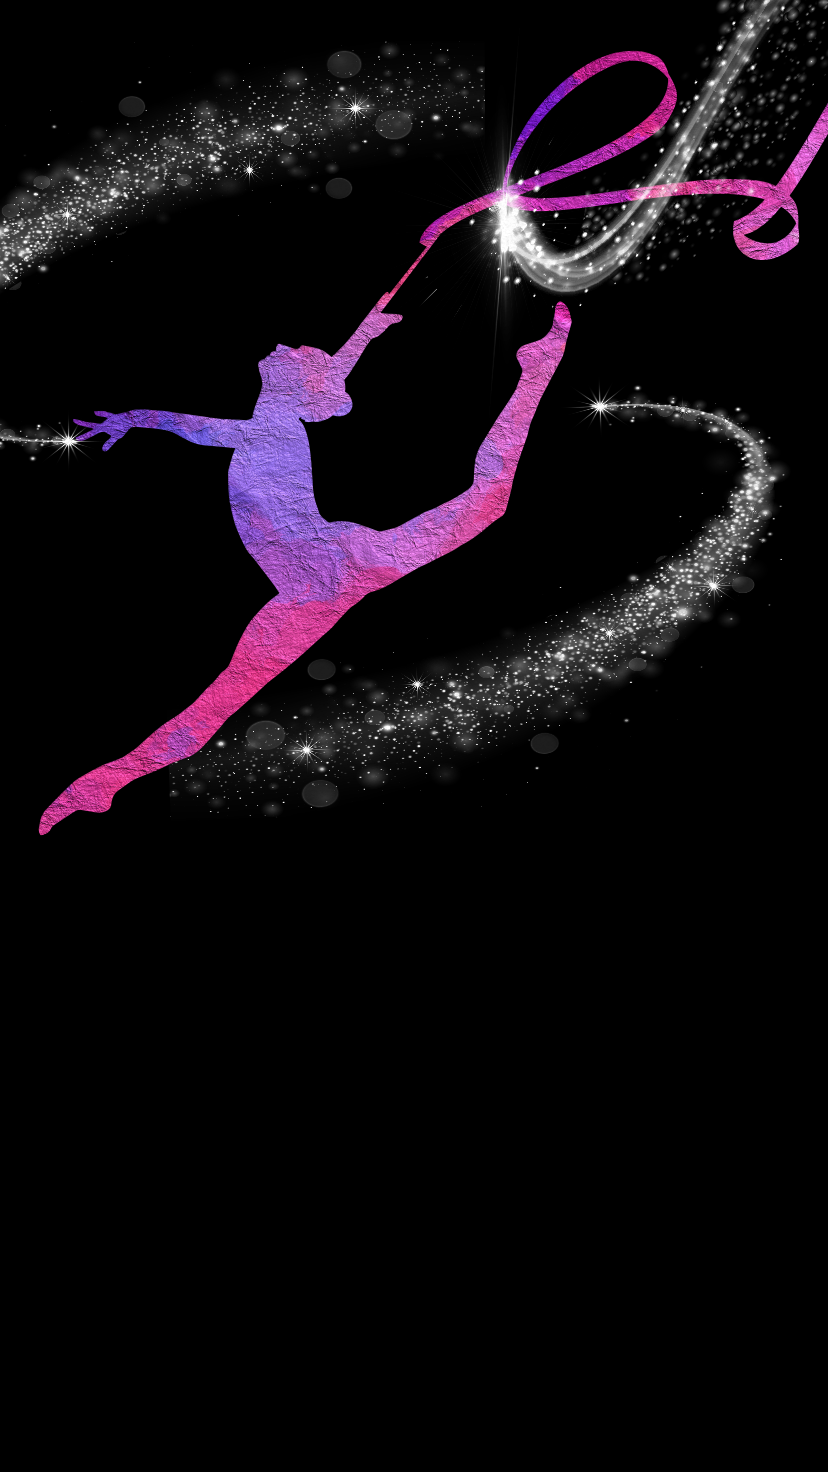 Celebrate A Gymnastics Win With This Free Evite Invitation Handcrafted With Details Of Purples Gymnastics Wallpaper Gymnastics Backgrounds Gymnastics Posters